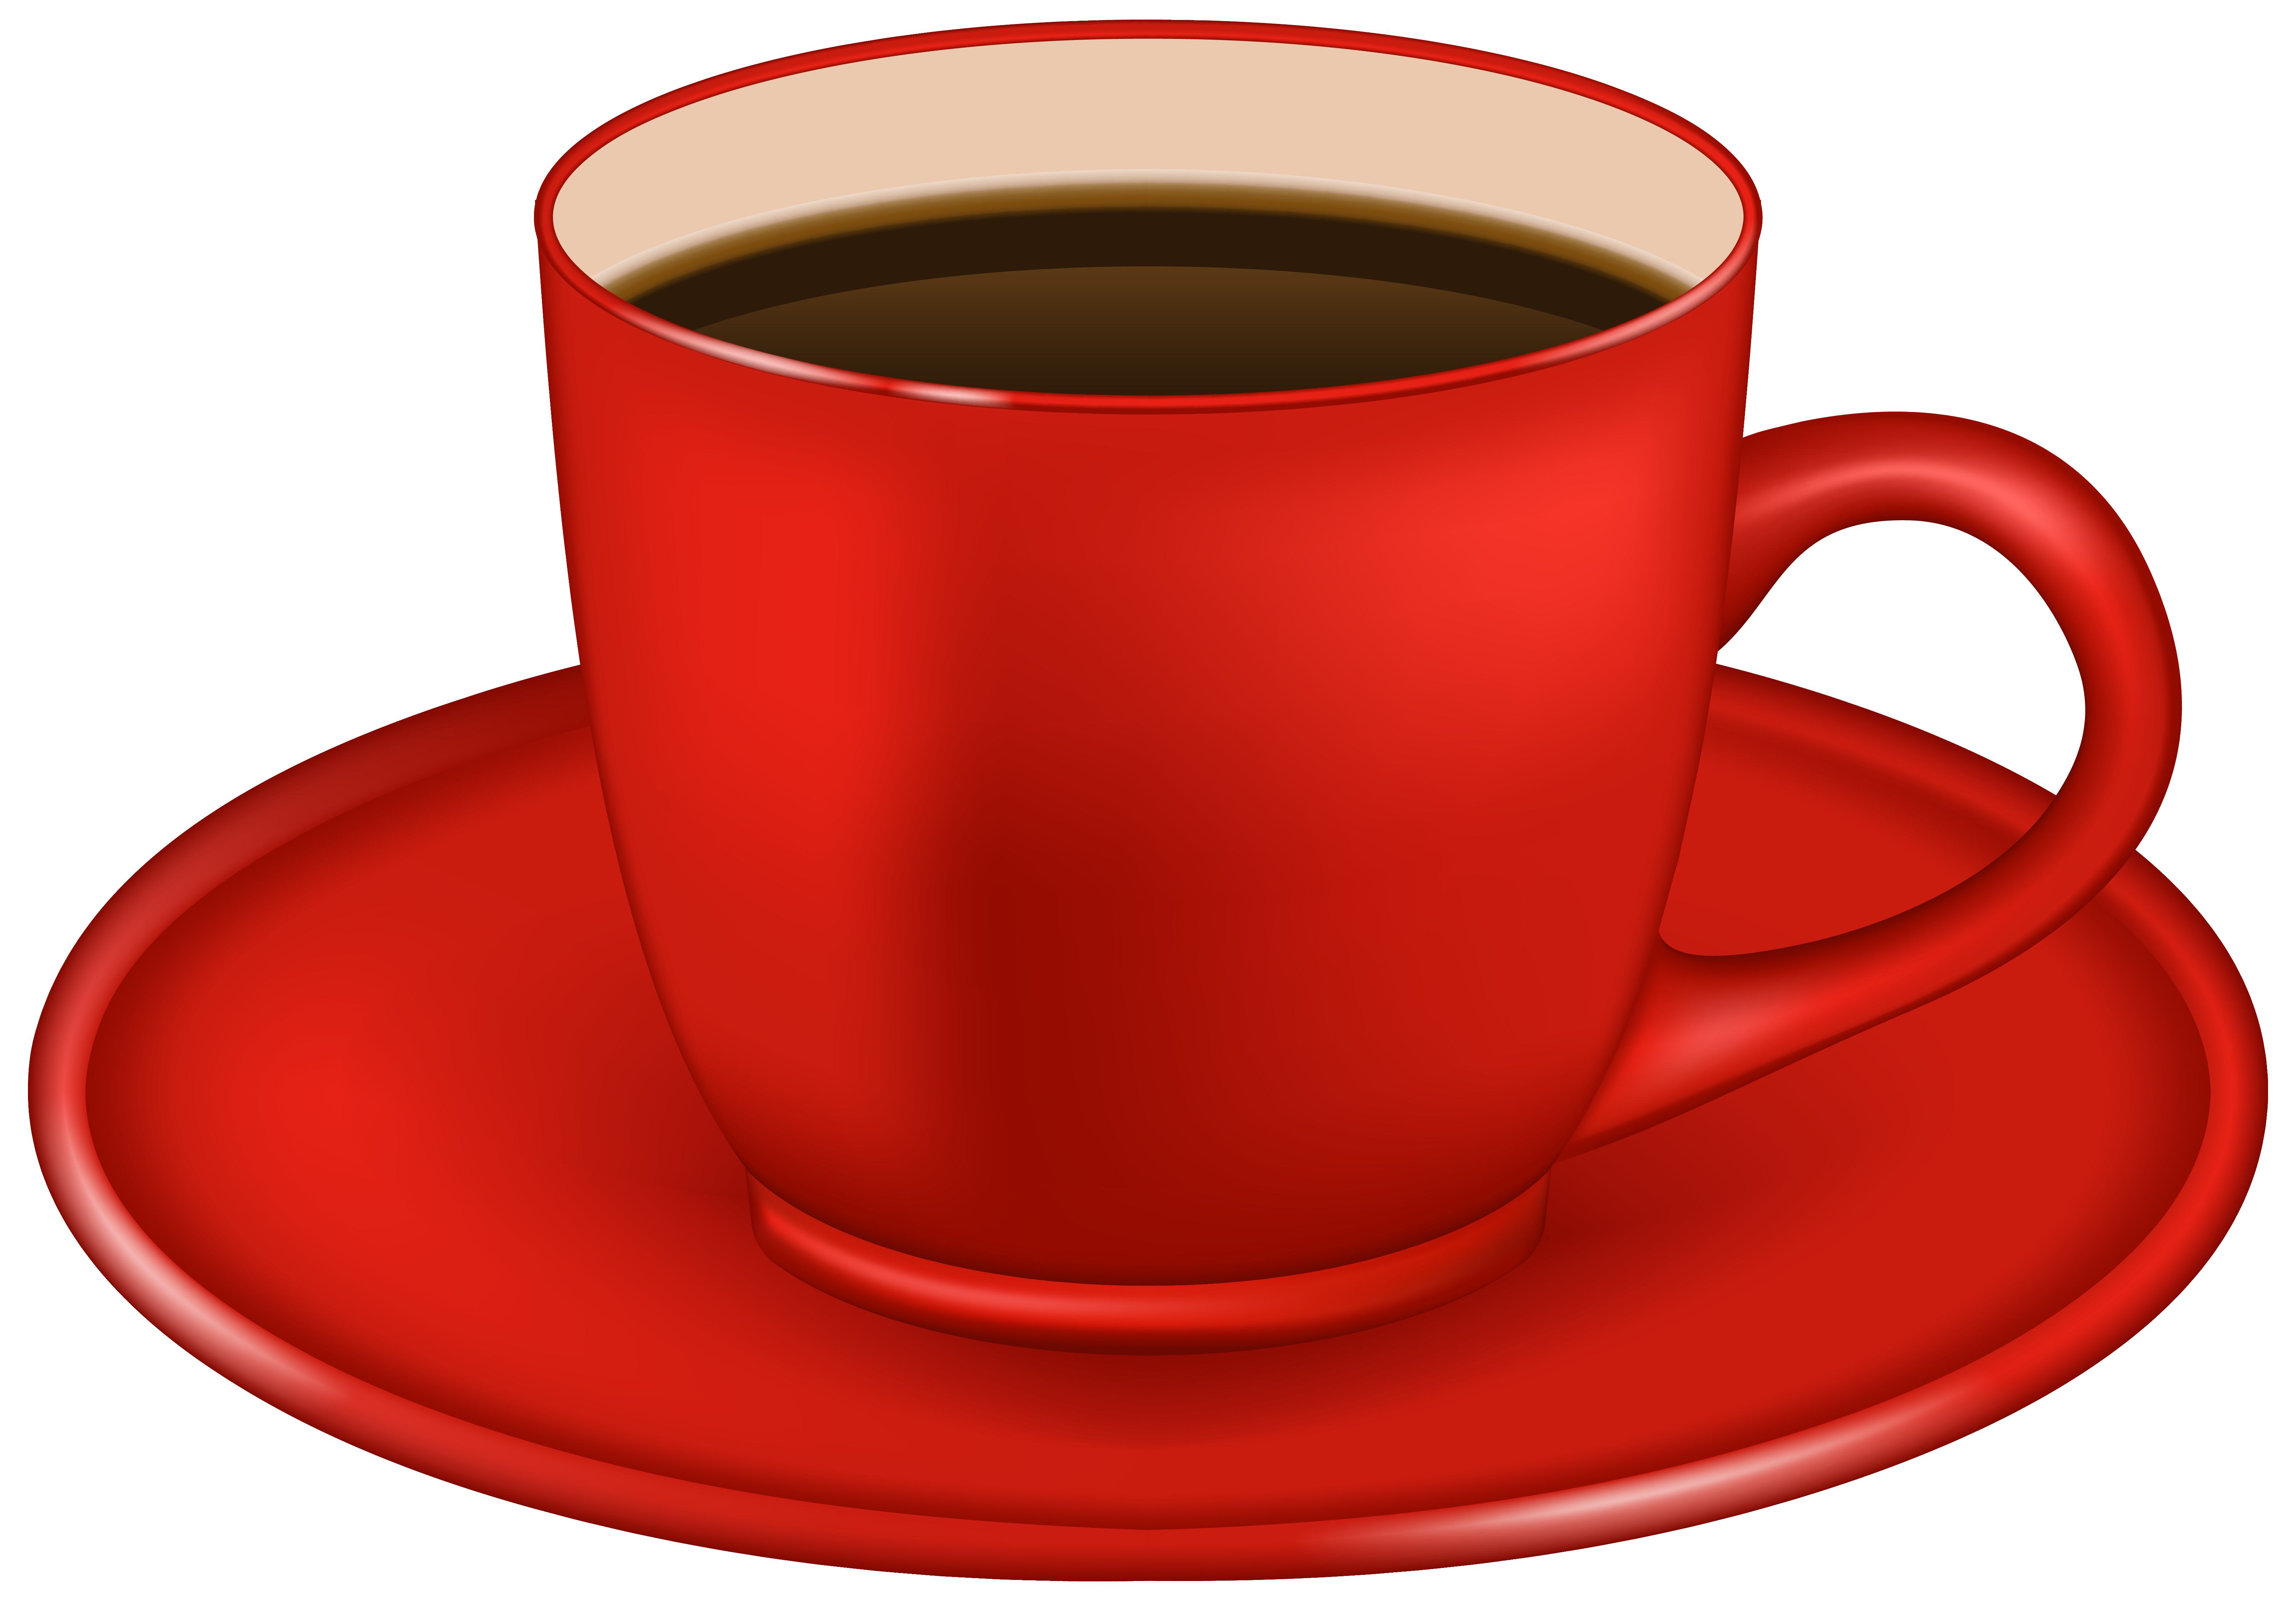 6321x4407 Red Coffee Cup Png Clipart Imageu200b Gallery Yopriceville